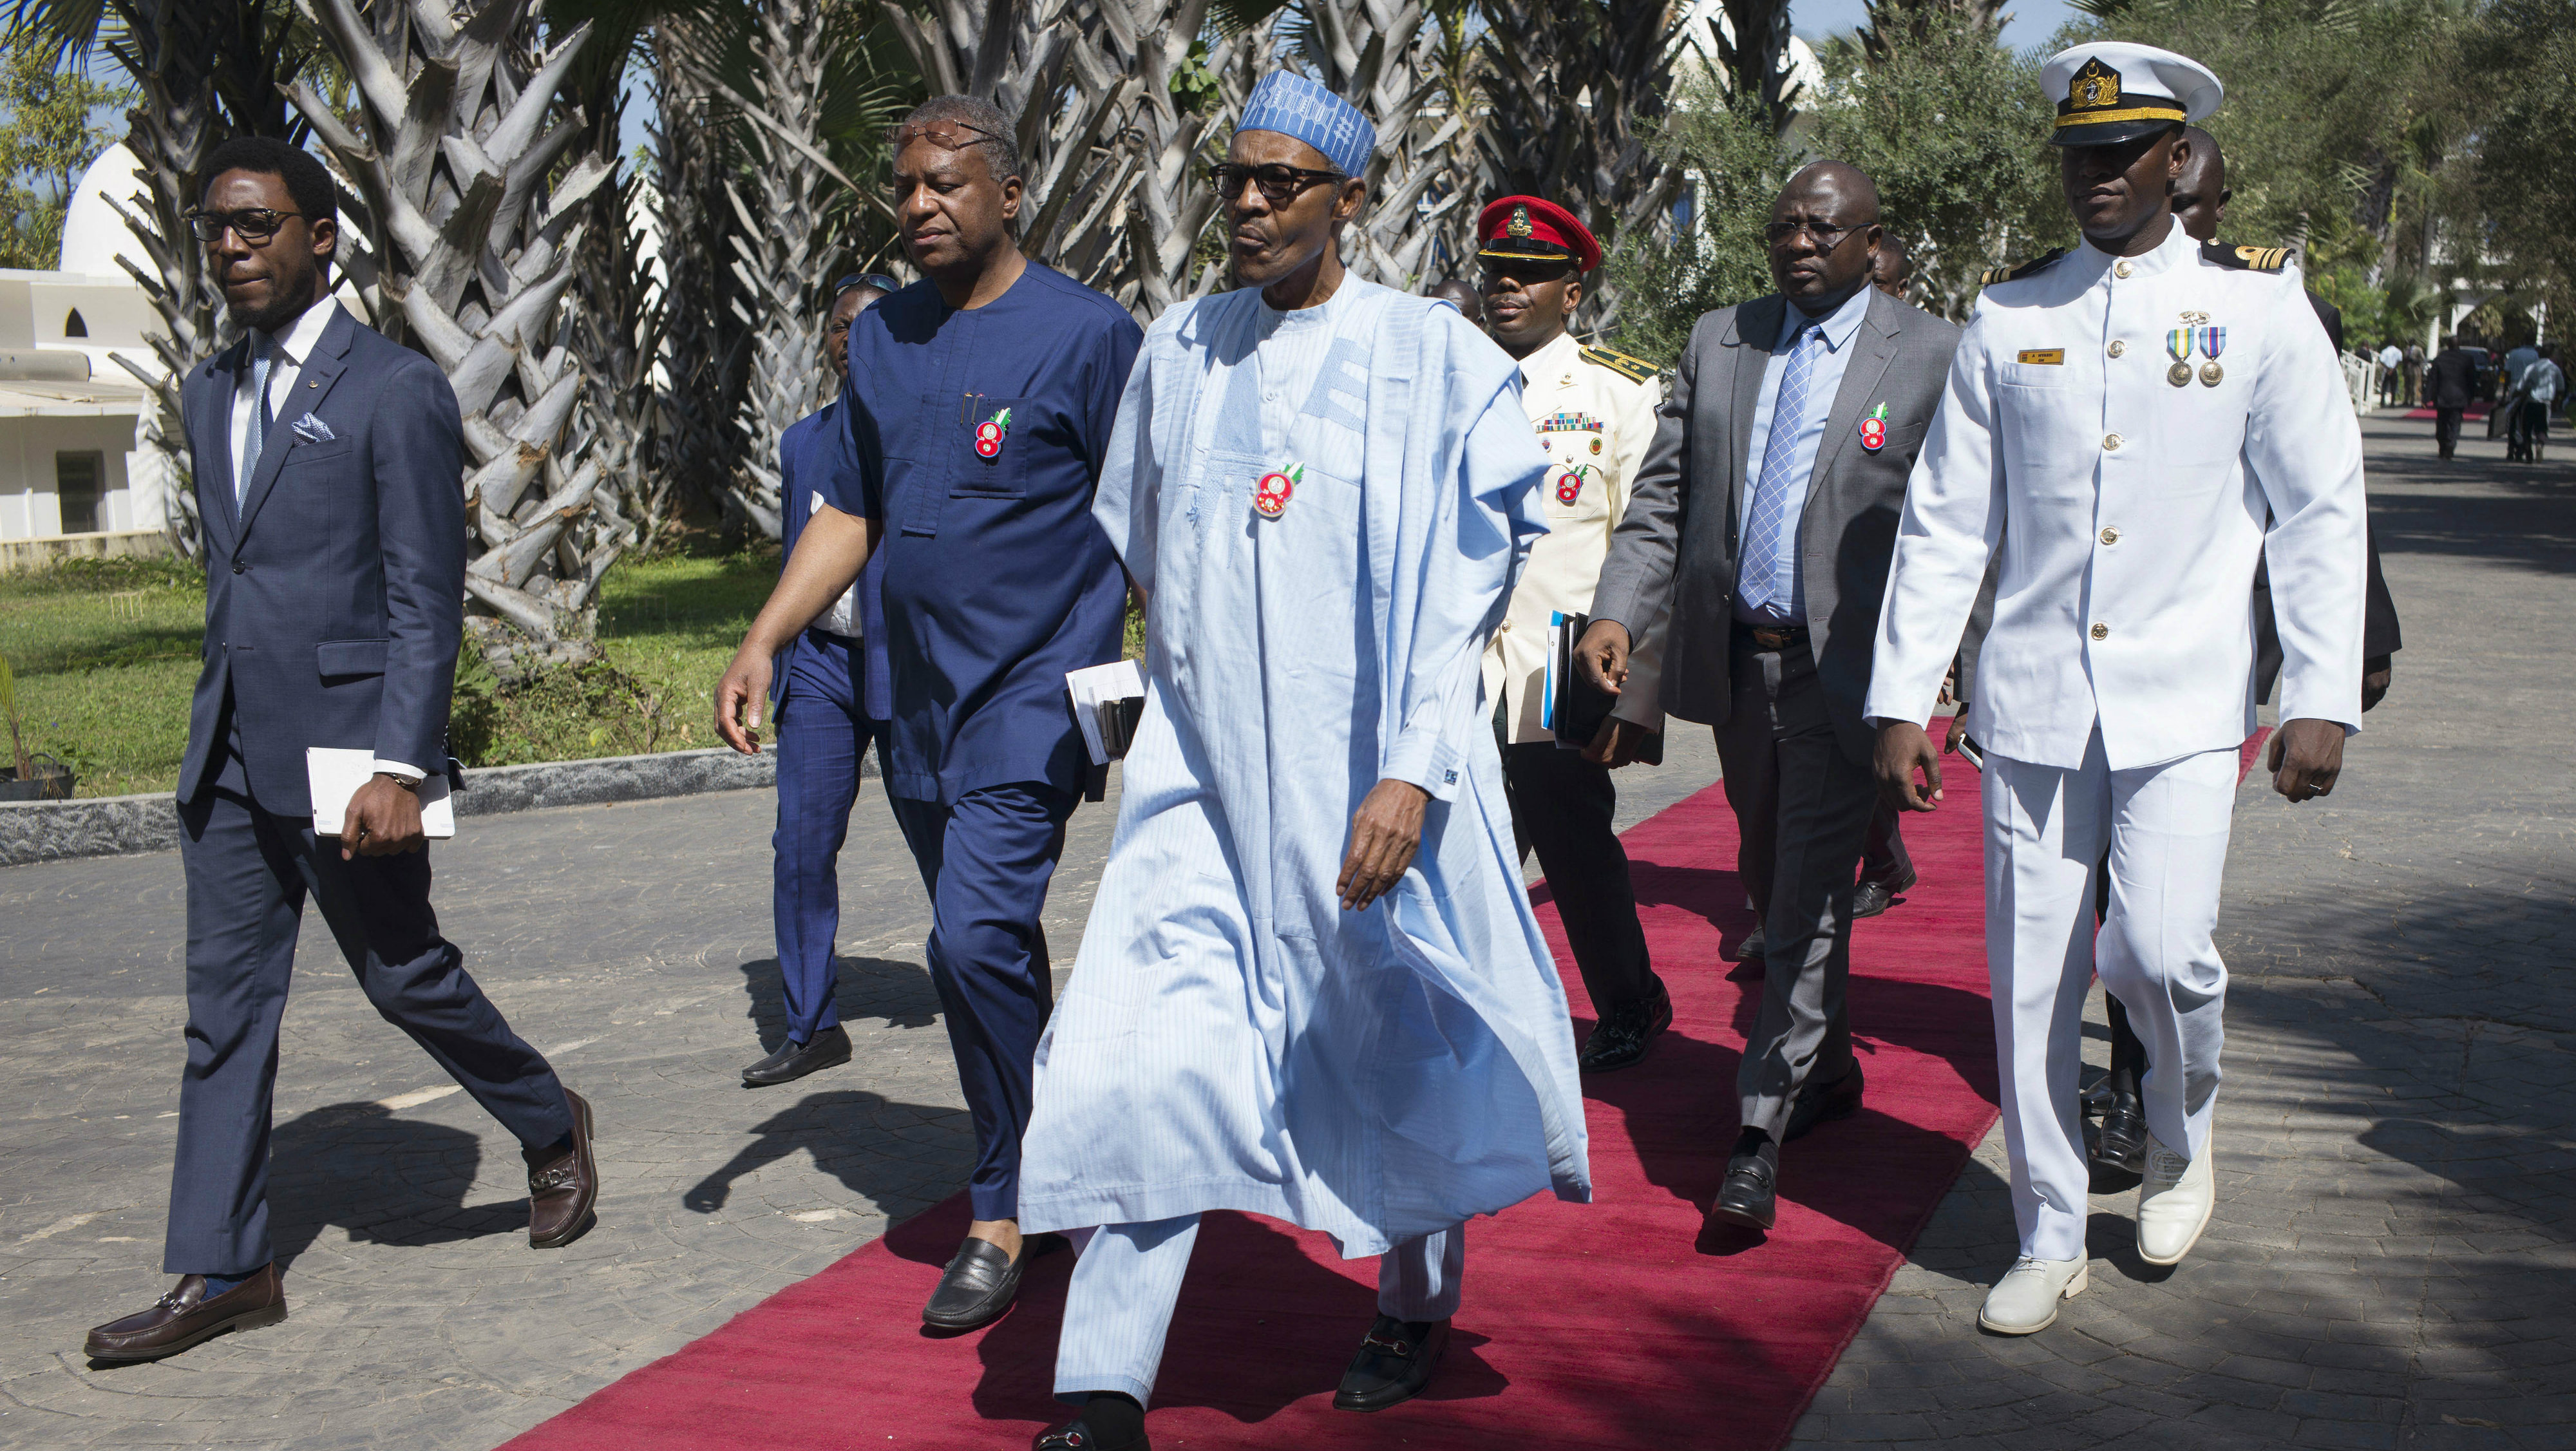 Nigeria President, Muhammadu Buhari, centre, on arrival for talks with Gambia's President Yahya Jammeh, in Banjul, Gambia, Tuesday, Dec. 13, 2016